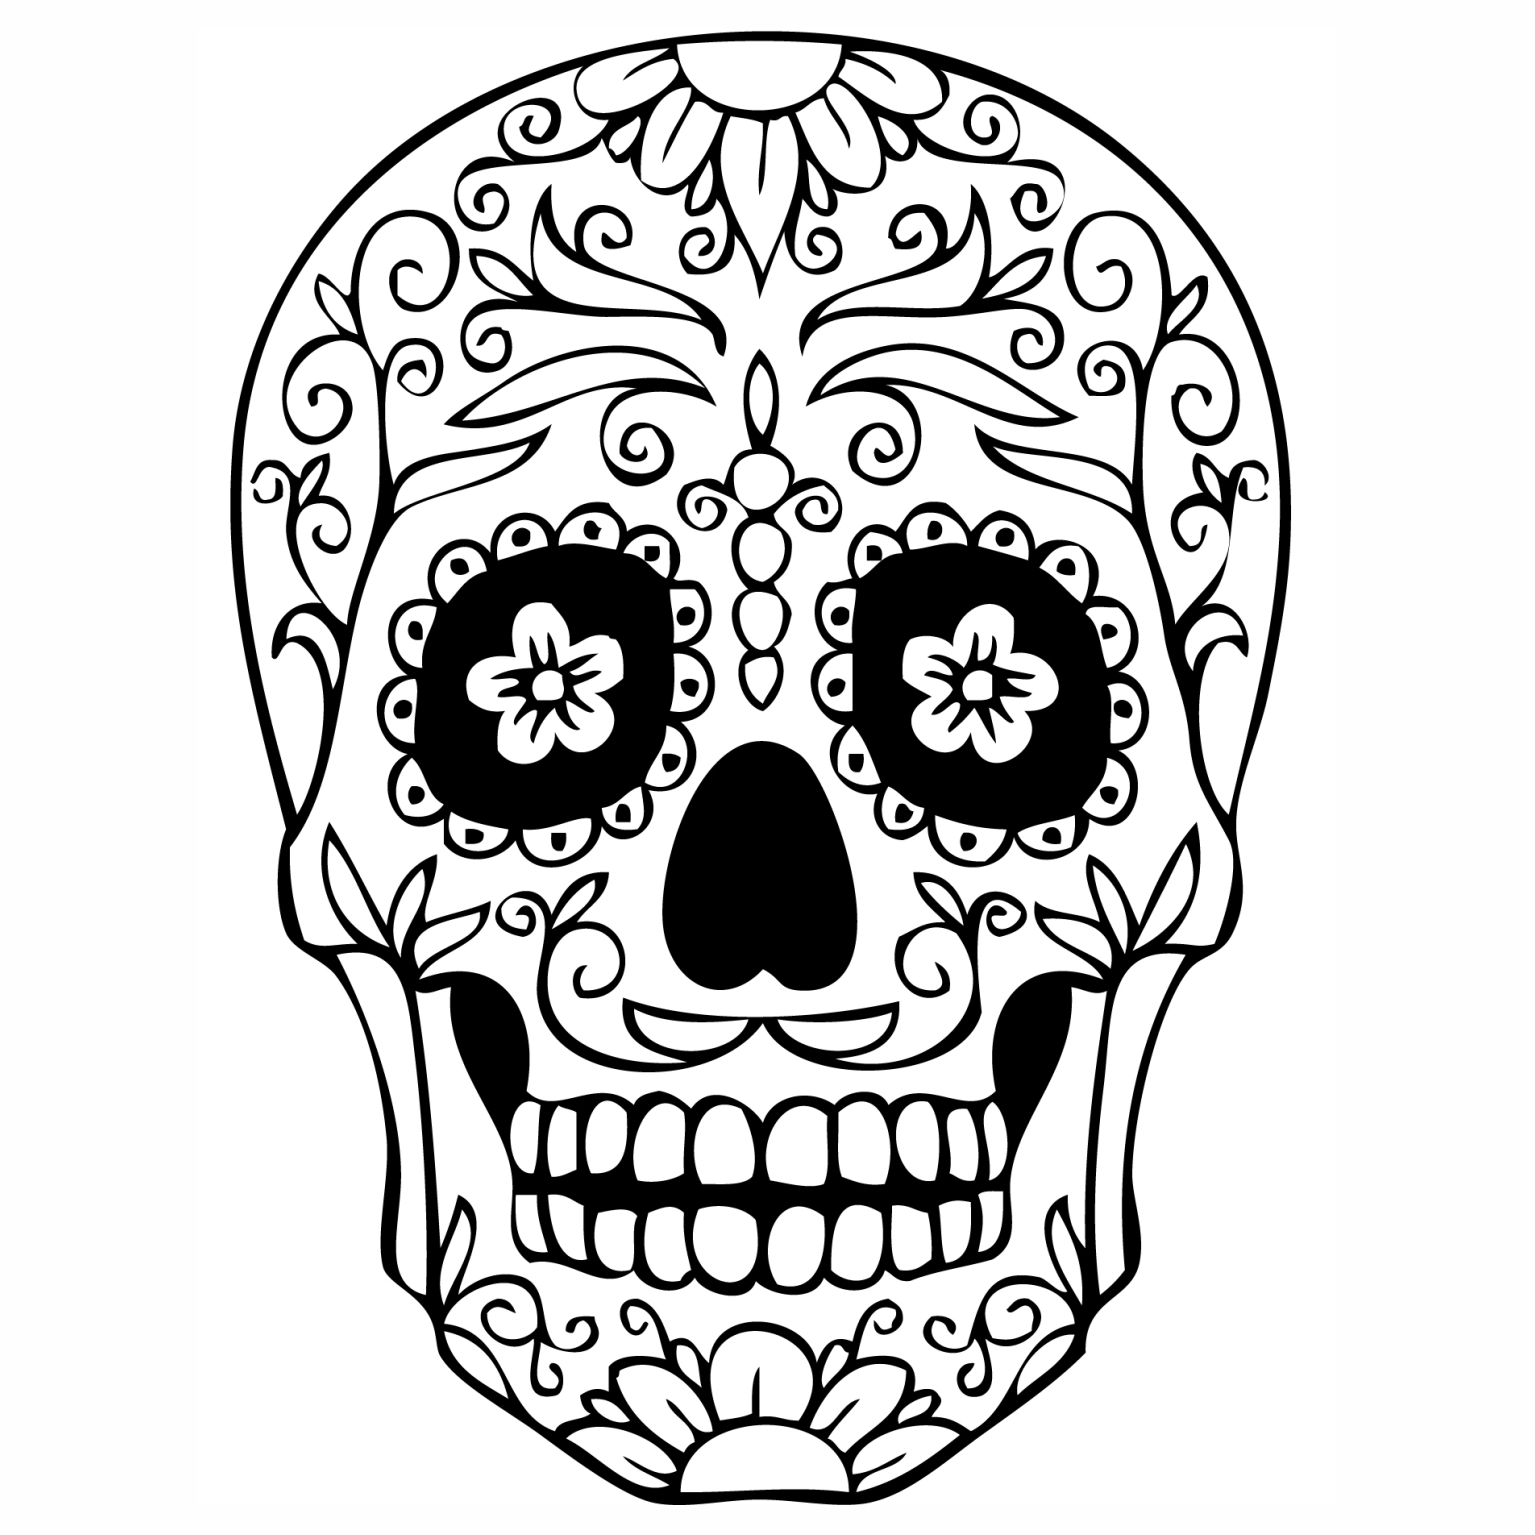 Zentangle Skull Coloring Pages Coloring Pages Of Skulls